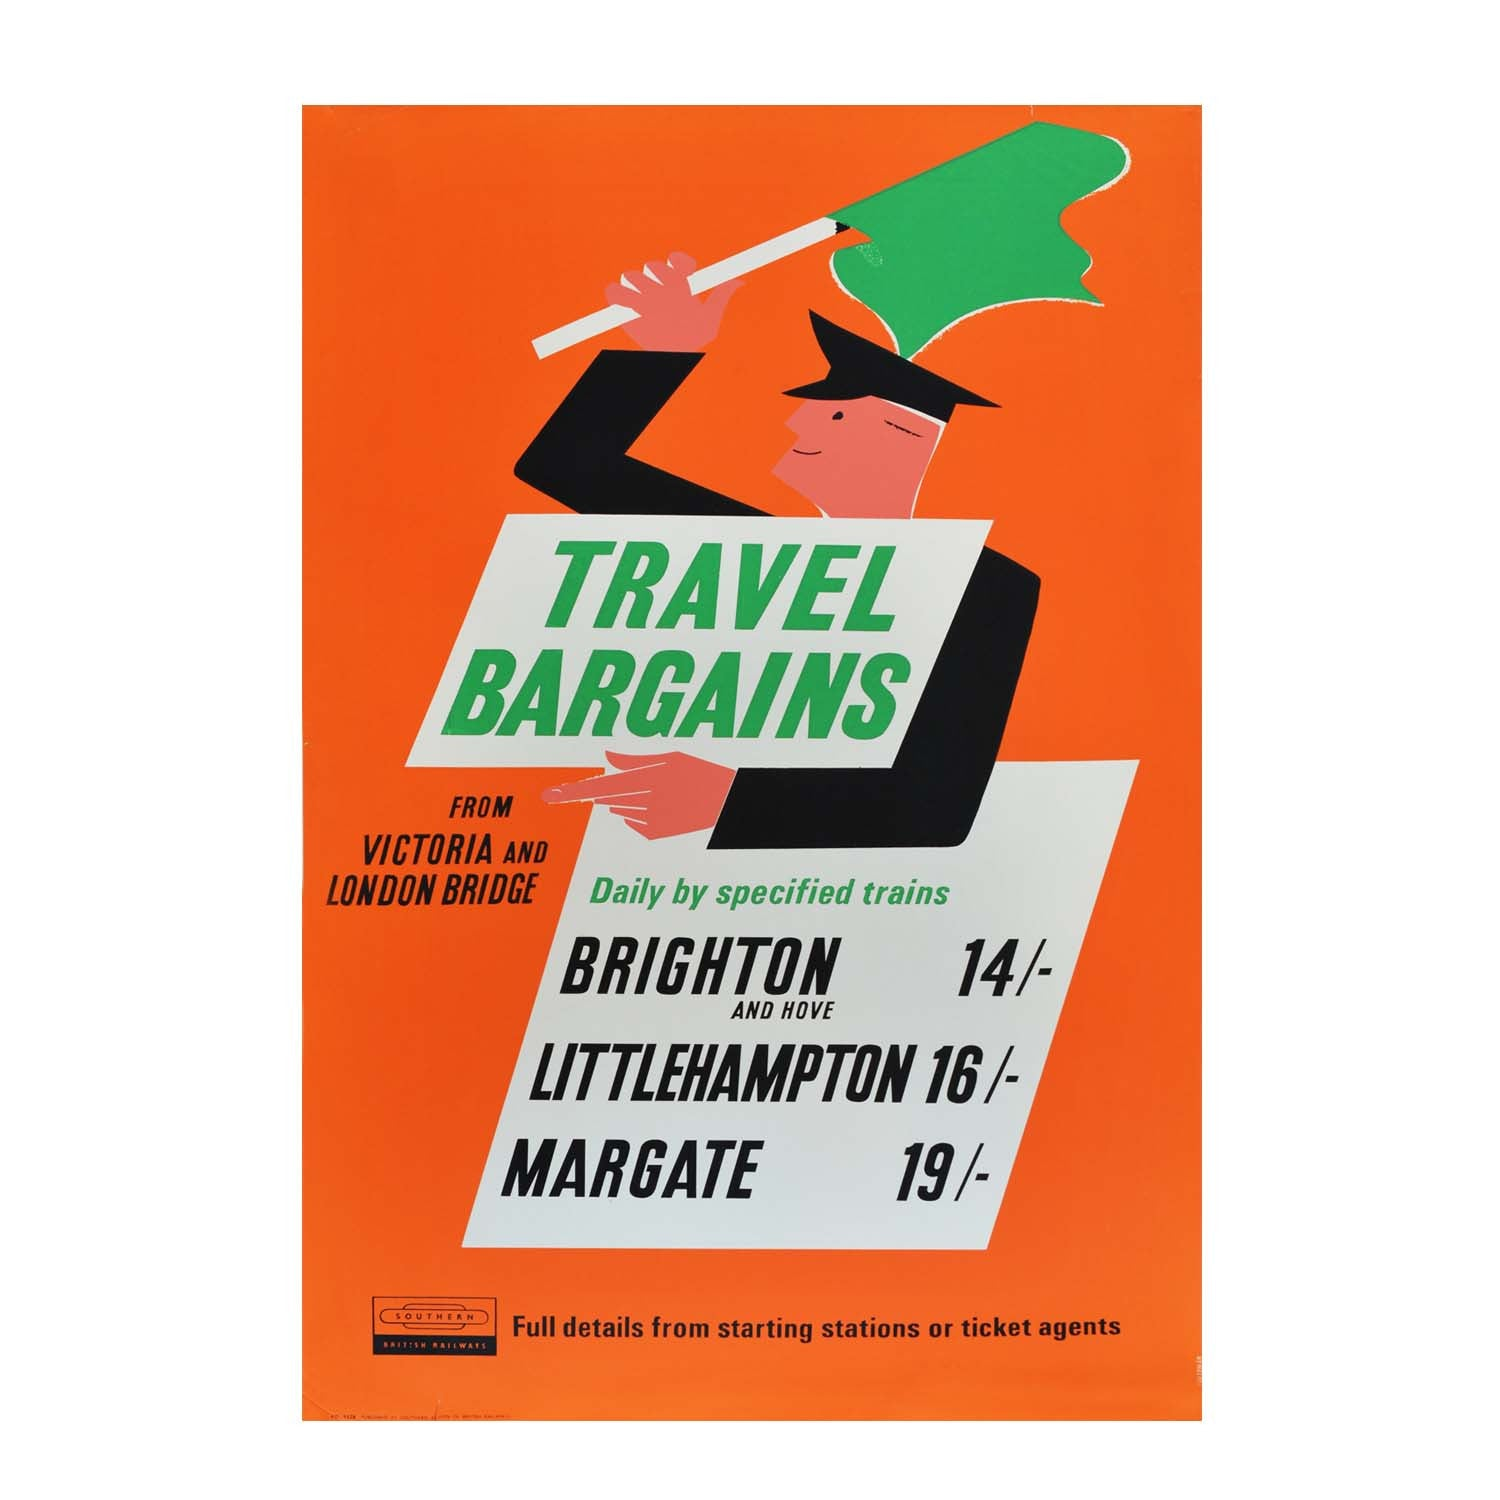 Original mid-century modern poster promoting day trips by train from London Victoria and London Bridge stations to Brighton, Littlehampton and Margate